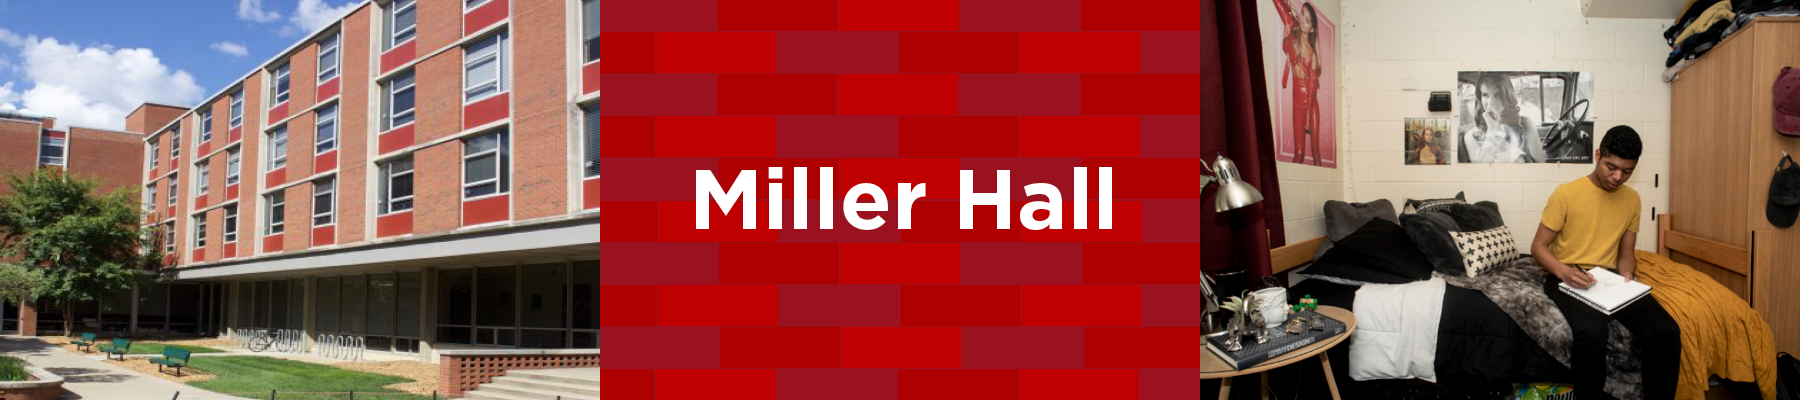 exterior of miller hall is brick with courtyard in front. Student in miller hall room on bed with wardobe on side